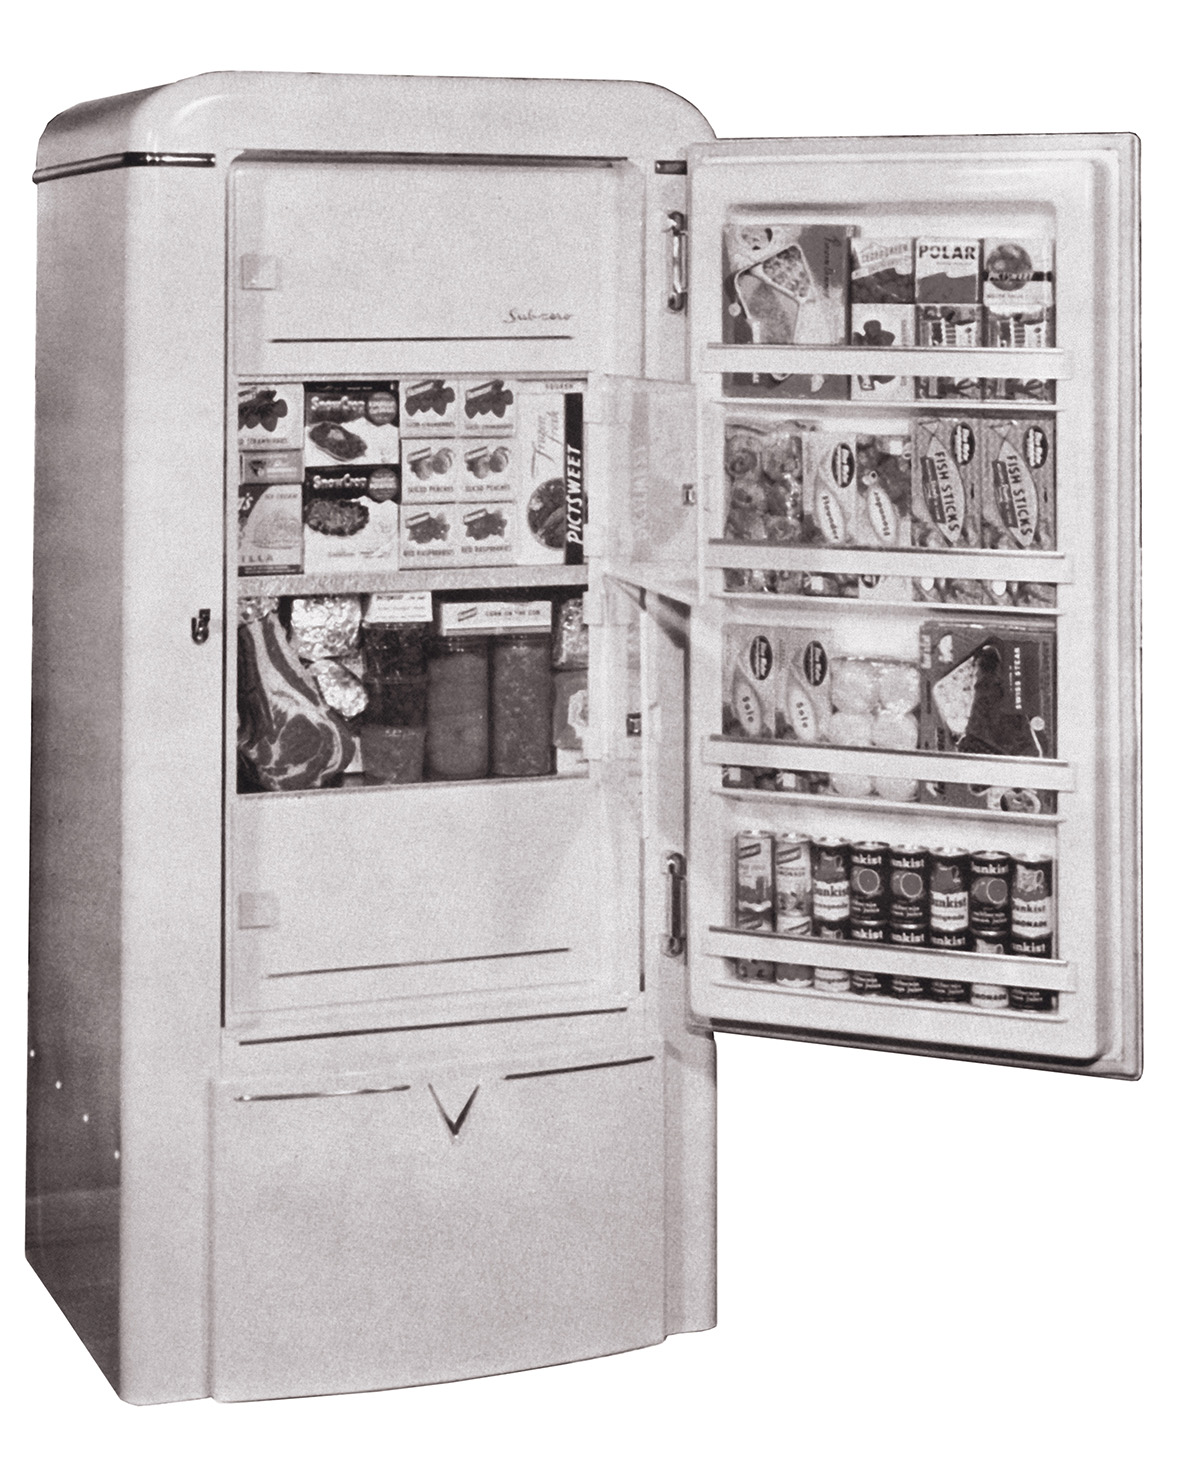 Sub Zero Appliances >> Celebrating 70 years of Sub-Zero appliances | Box Appliance